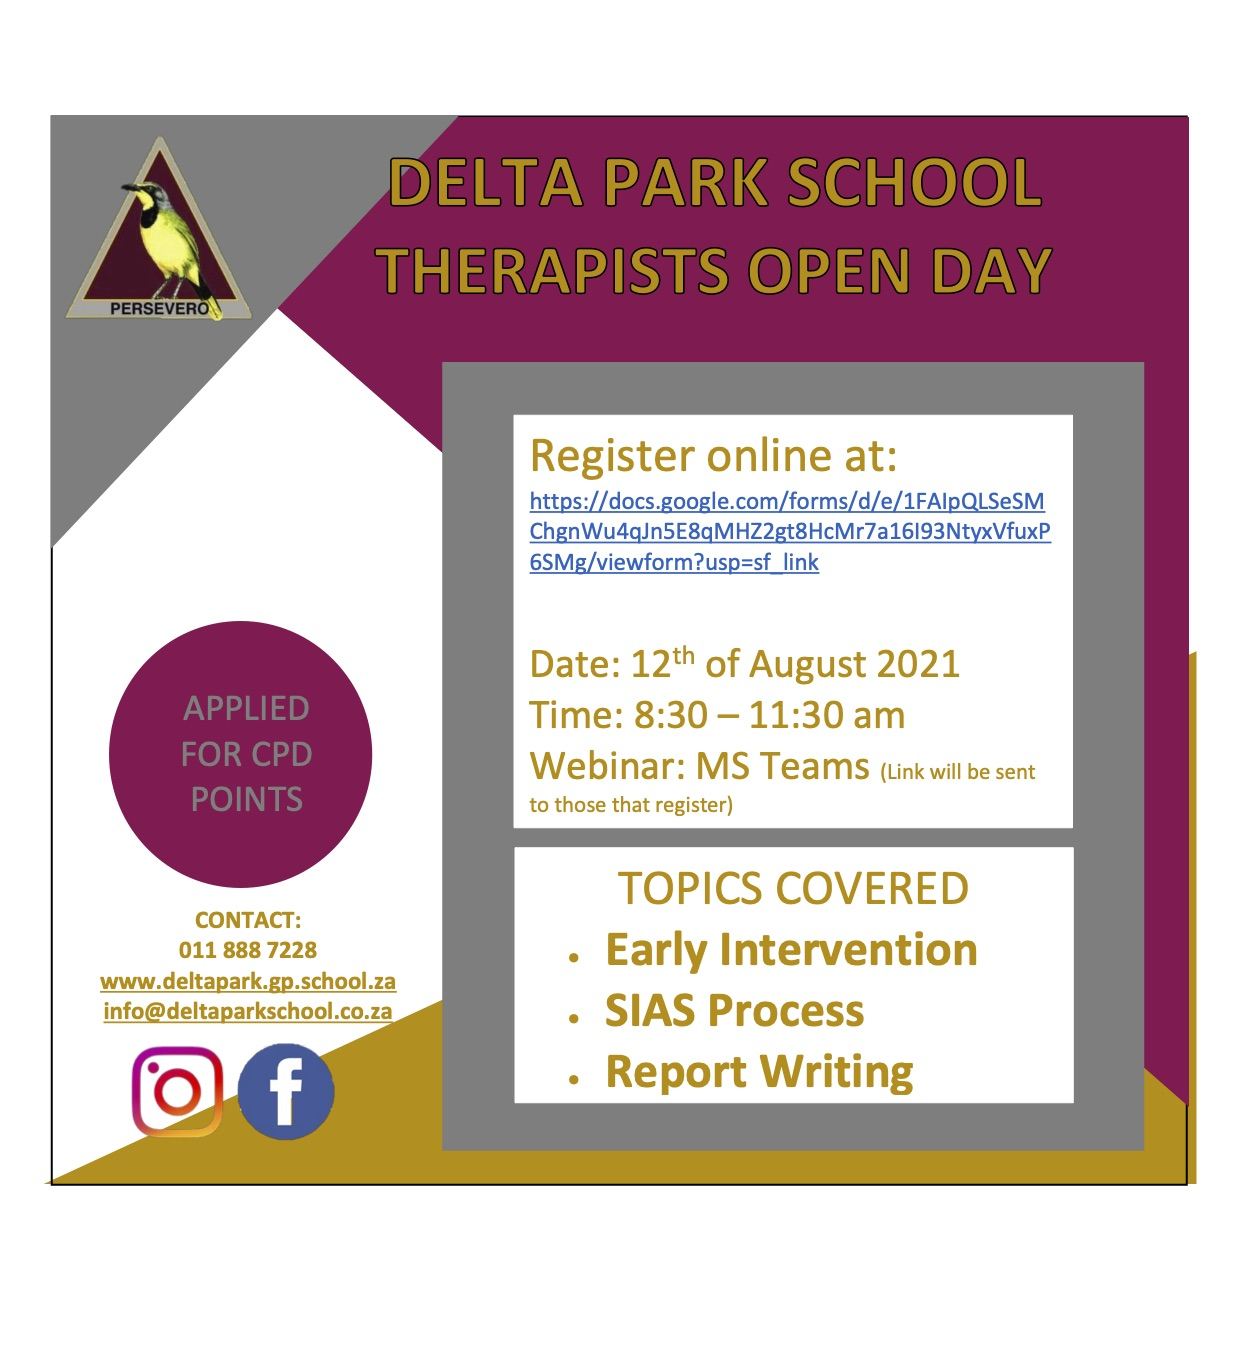 DPS Open Day for Therapists